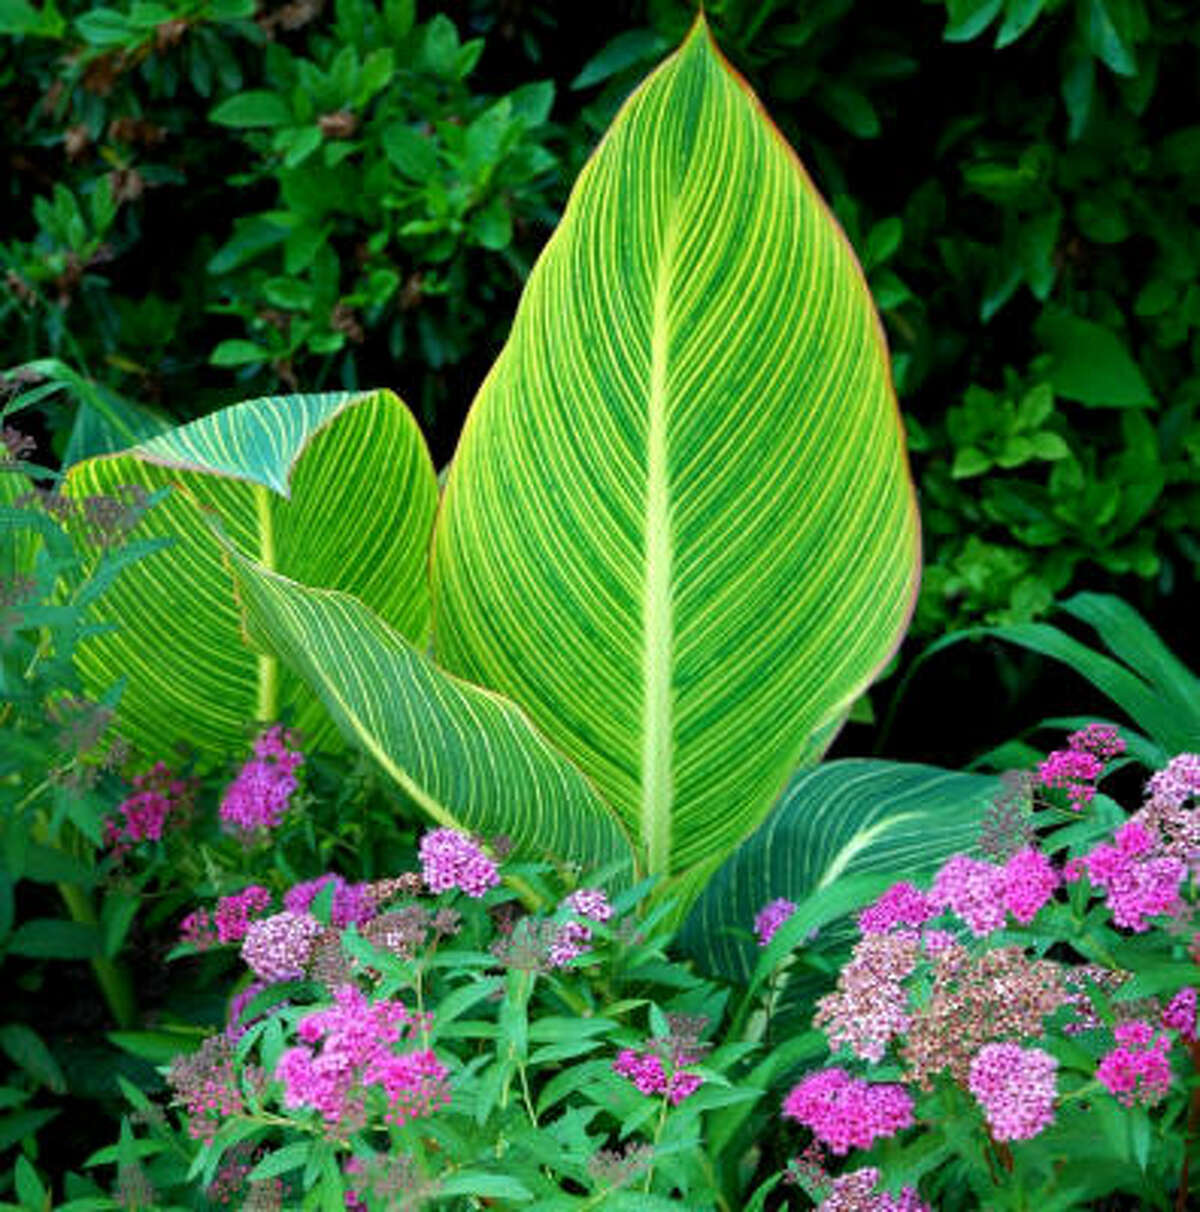 The 'Bengal Tiger' canna can make an interesting combination for a tropical look with Japanese spiraea. Submit your garden photos | Houston Plant Database | HoustonGrows.com